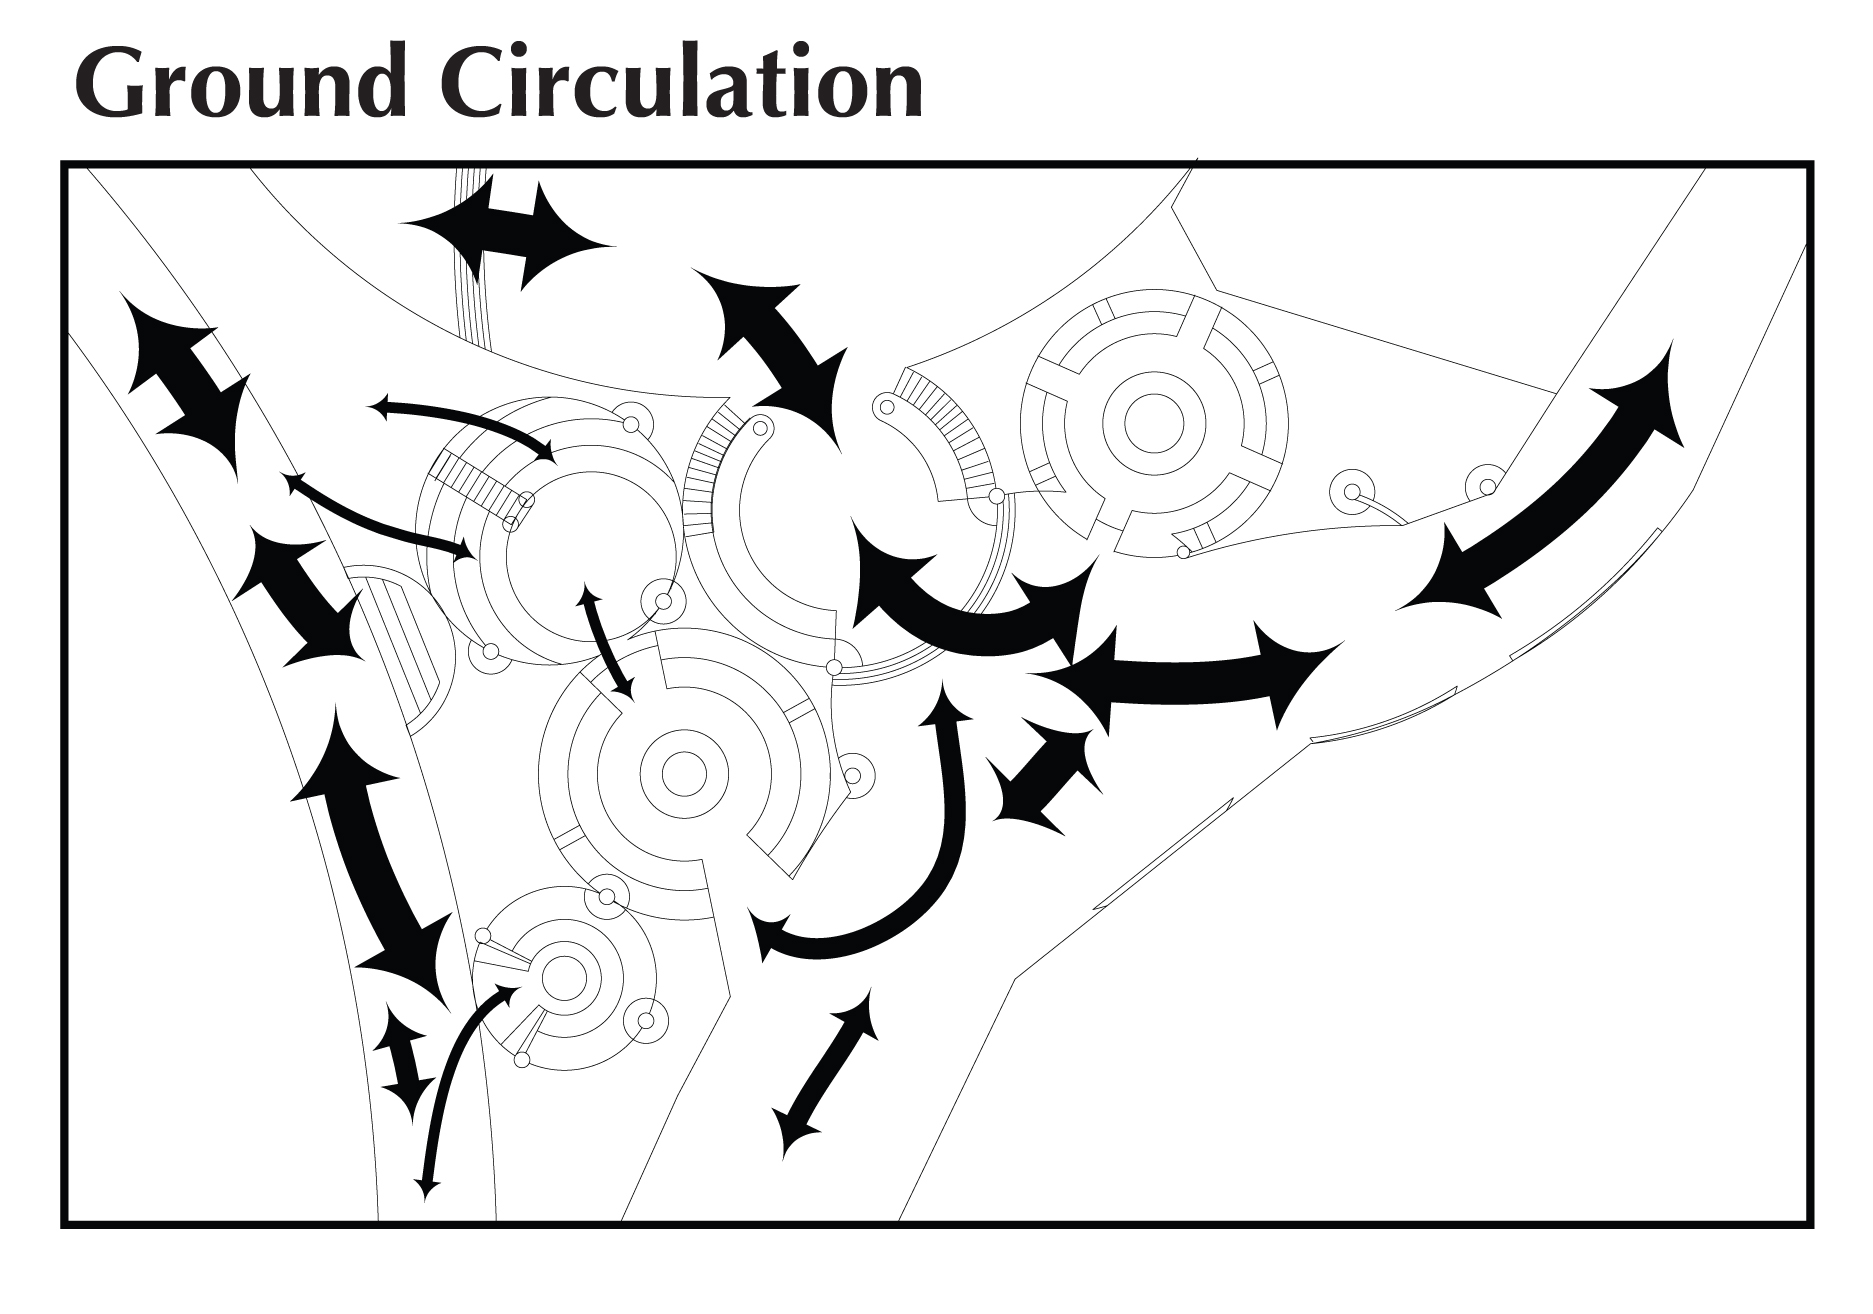 Ground Circulation